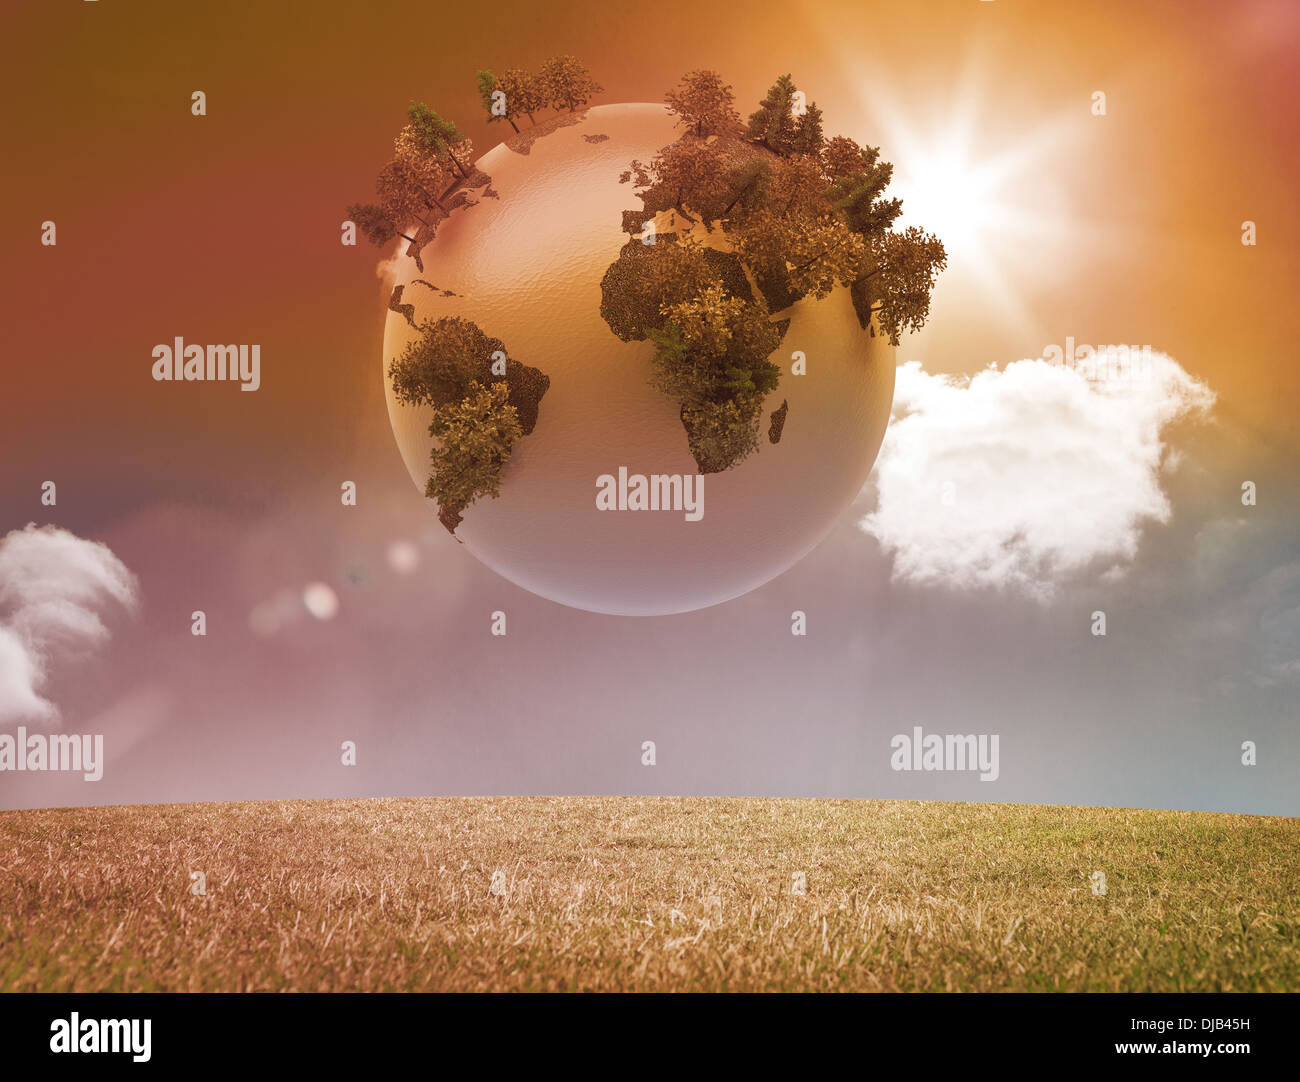 Digitally generated earth floating in air - Stock Photo